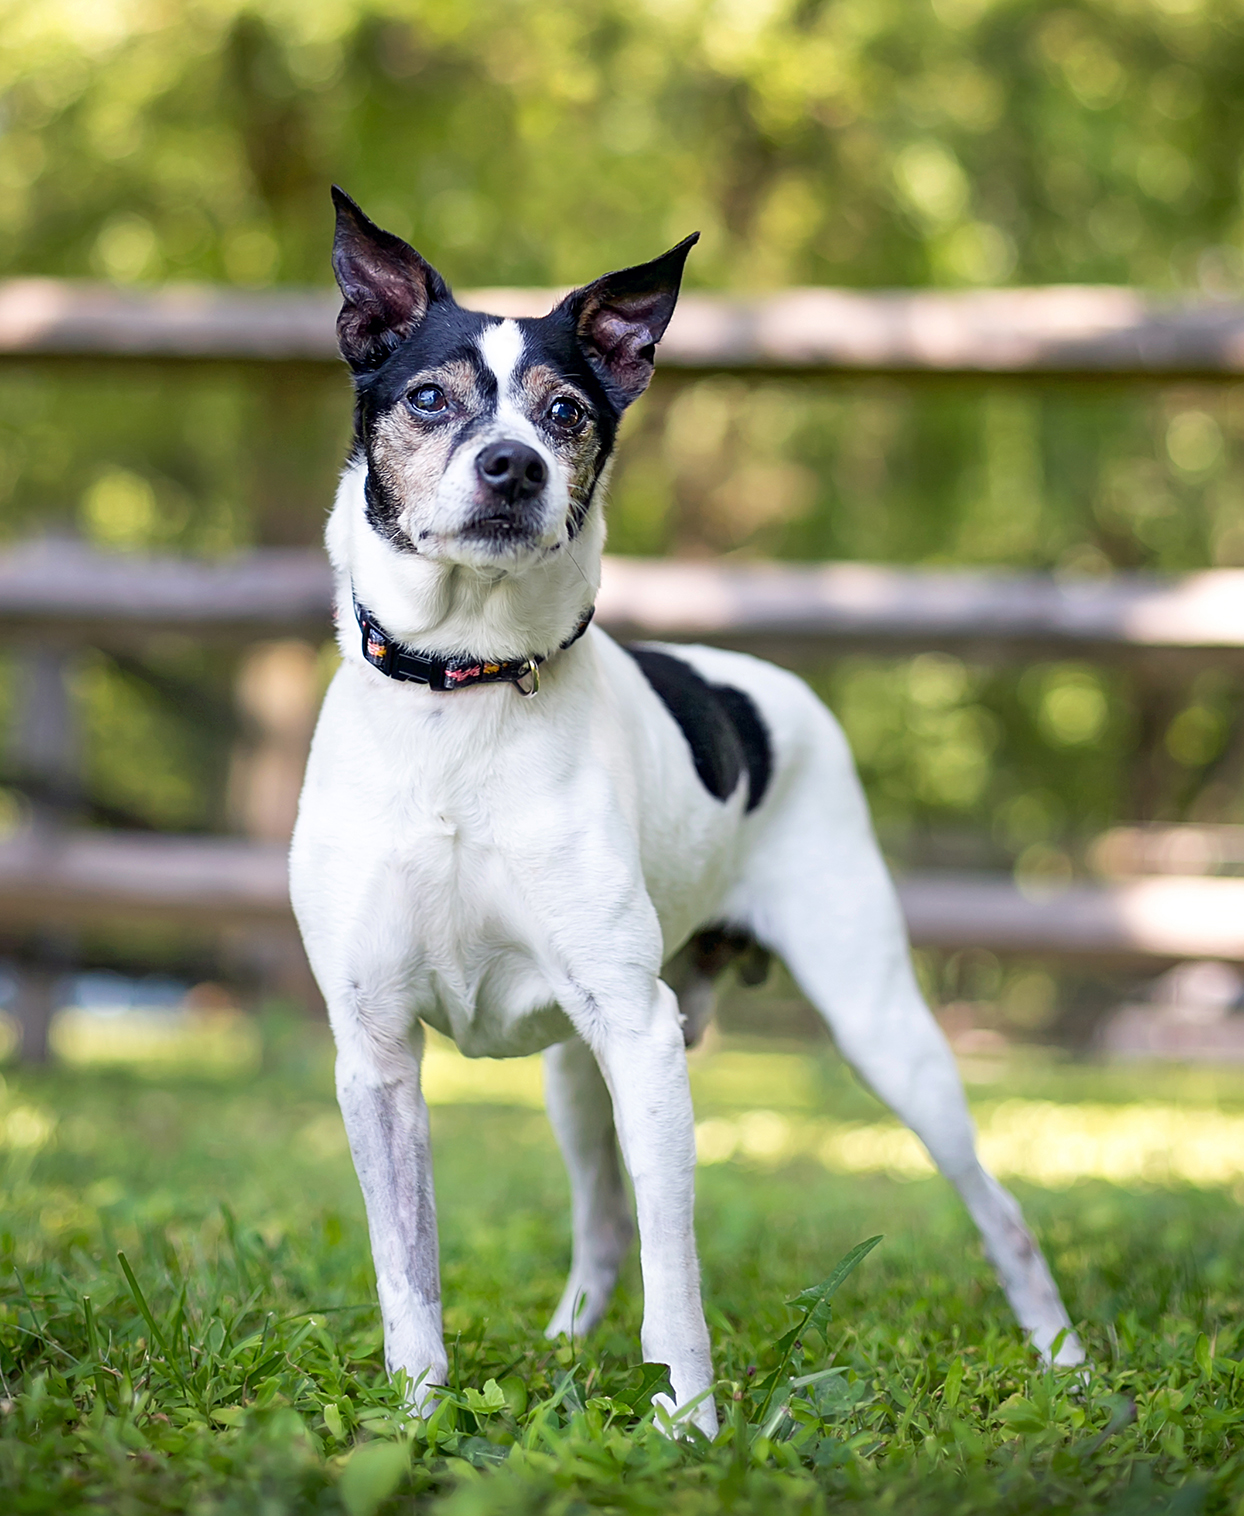 black and white rat terrier standing in grass in front of a horizontal fence